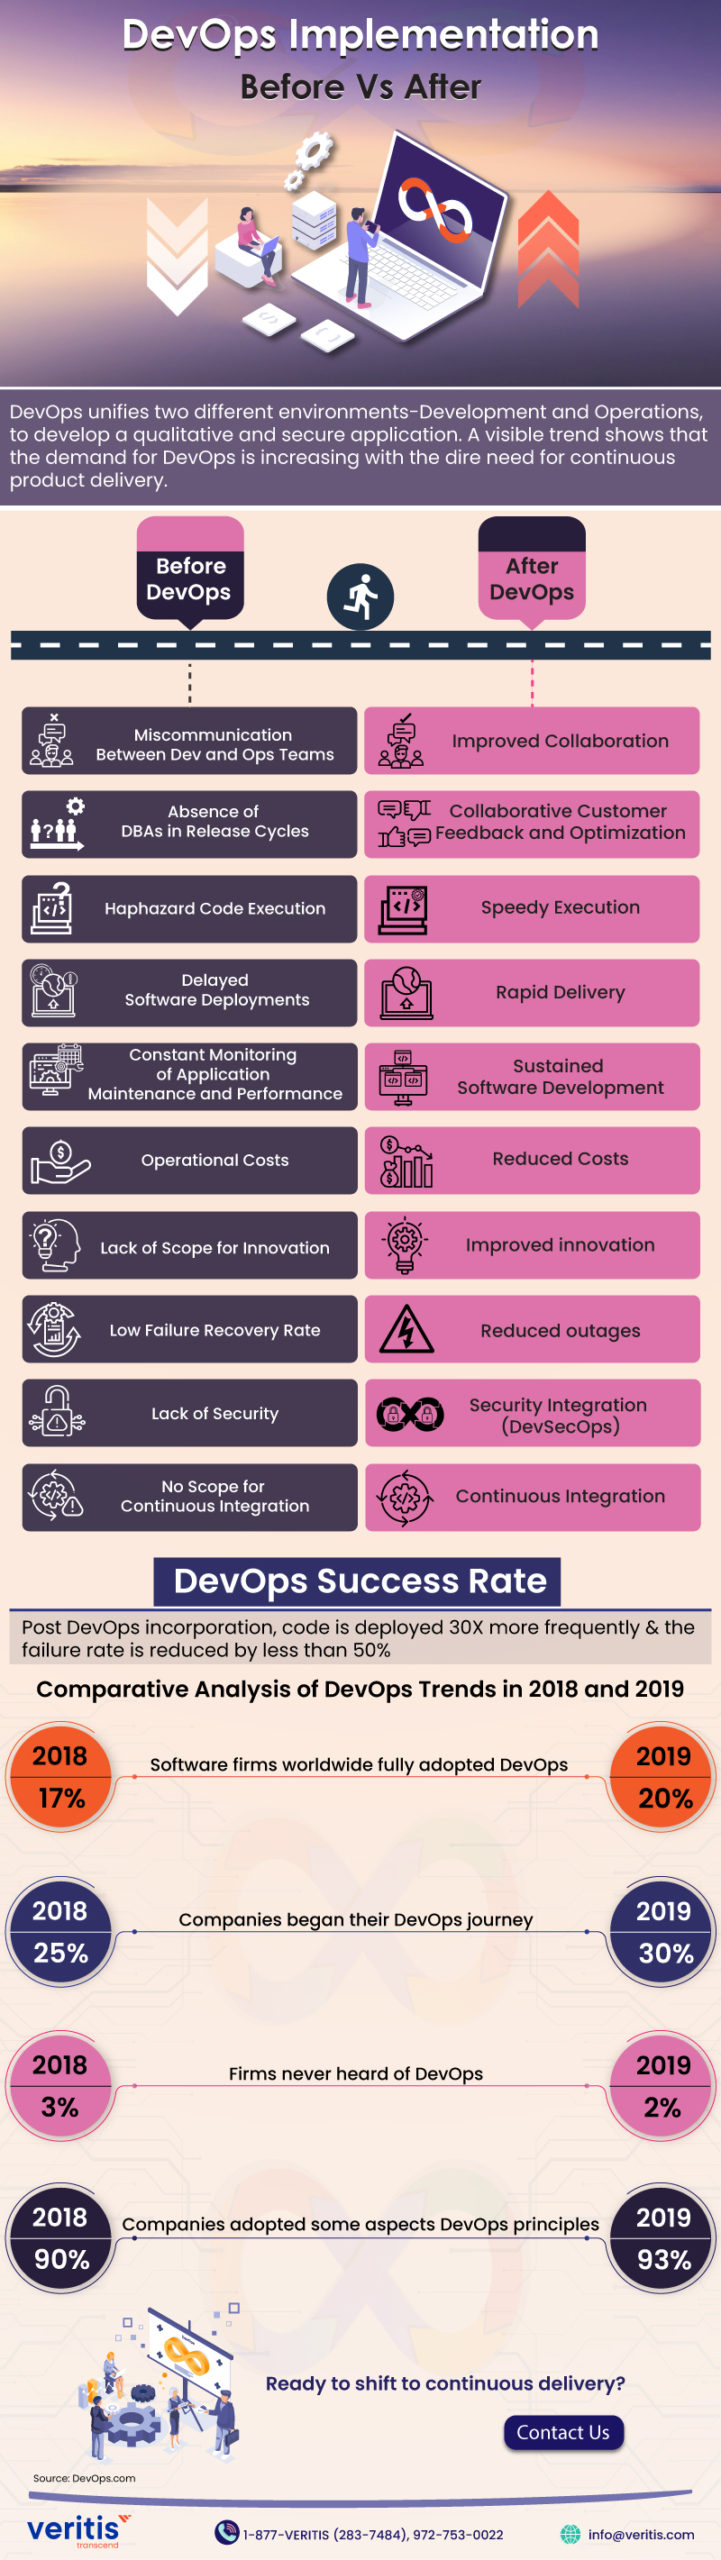 Before DevOps Vs After DevOps Implementation - Infographic